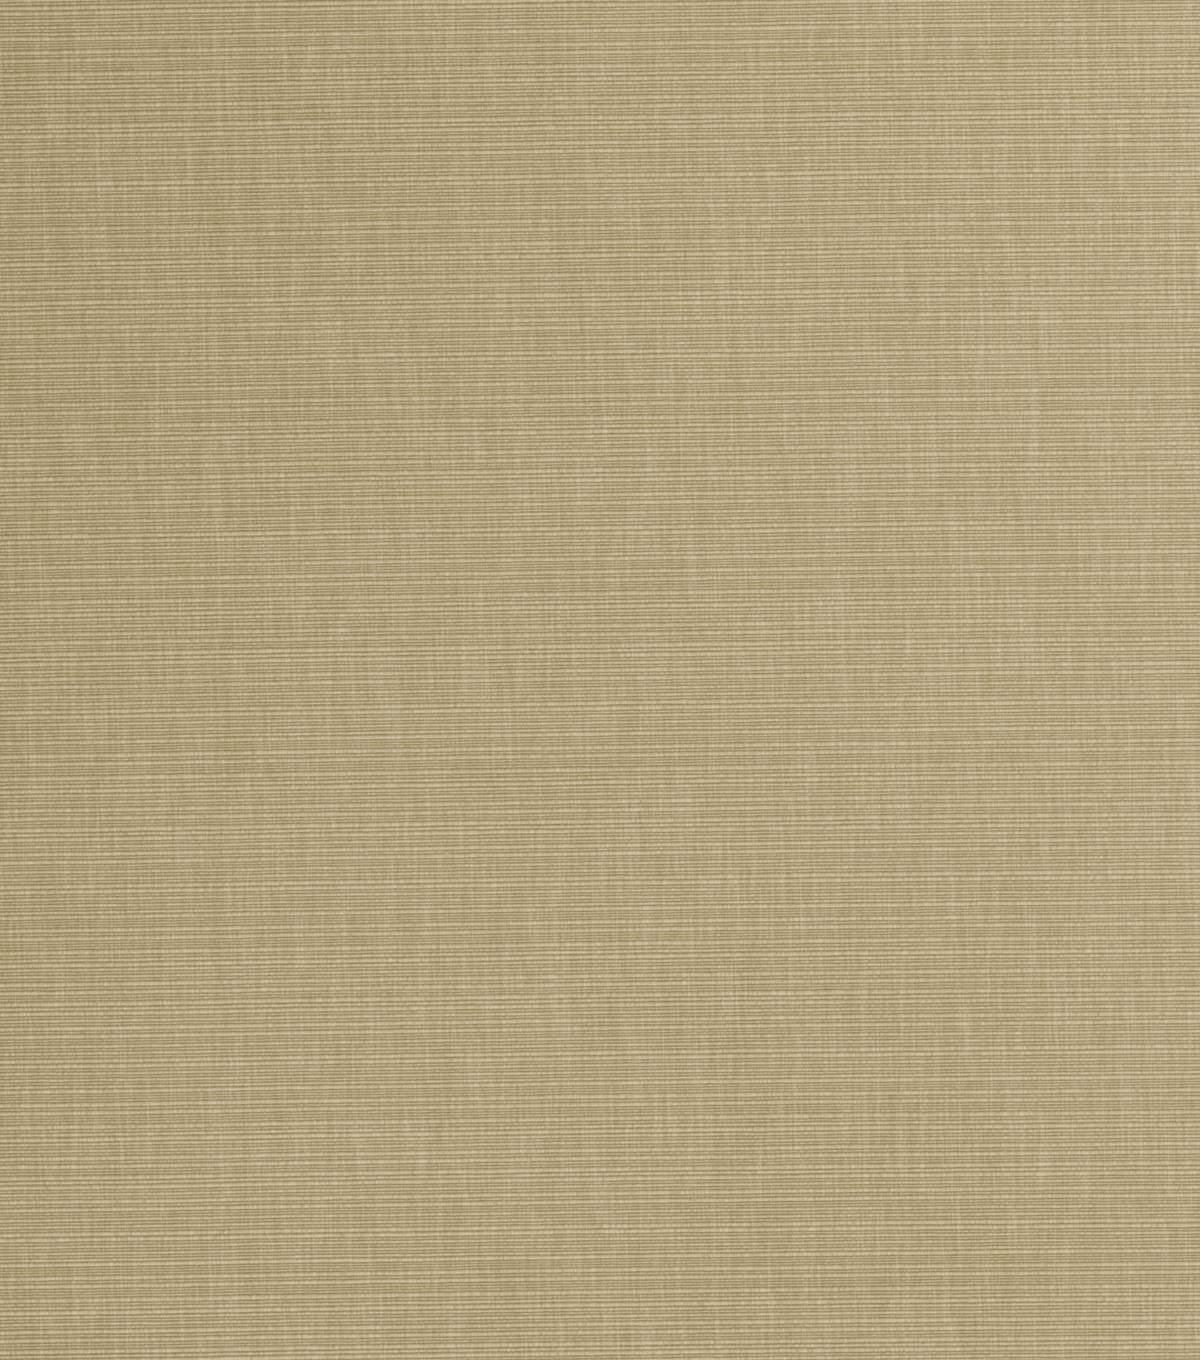 Home Decor 8x8 Fabric Swatch-Eaton Square Archie Seagrass